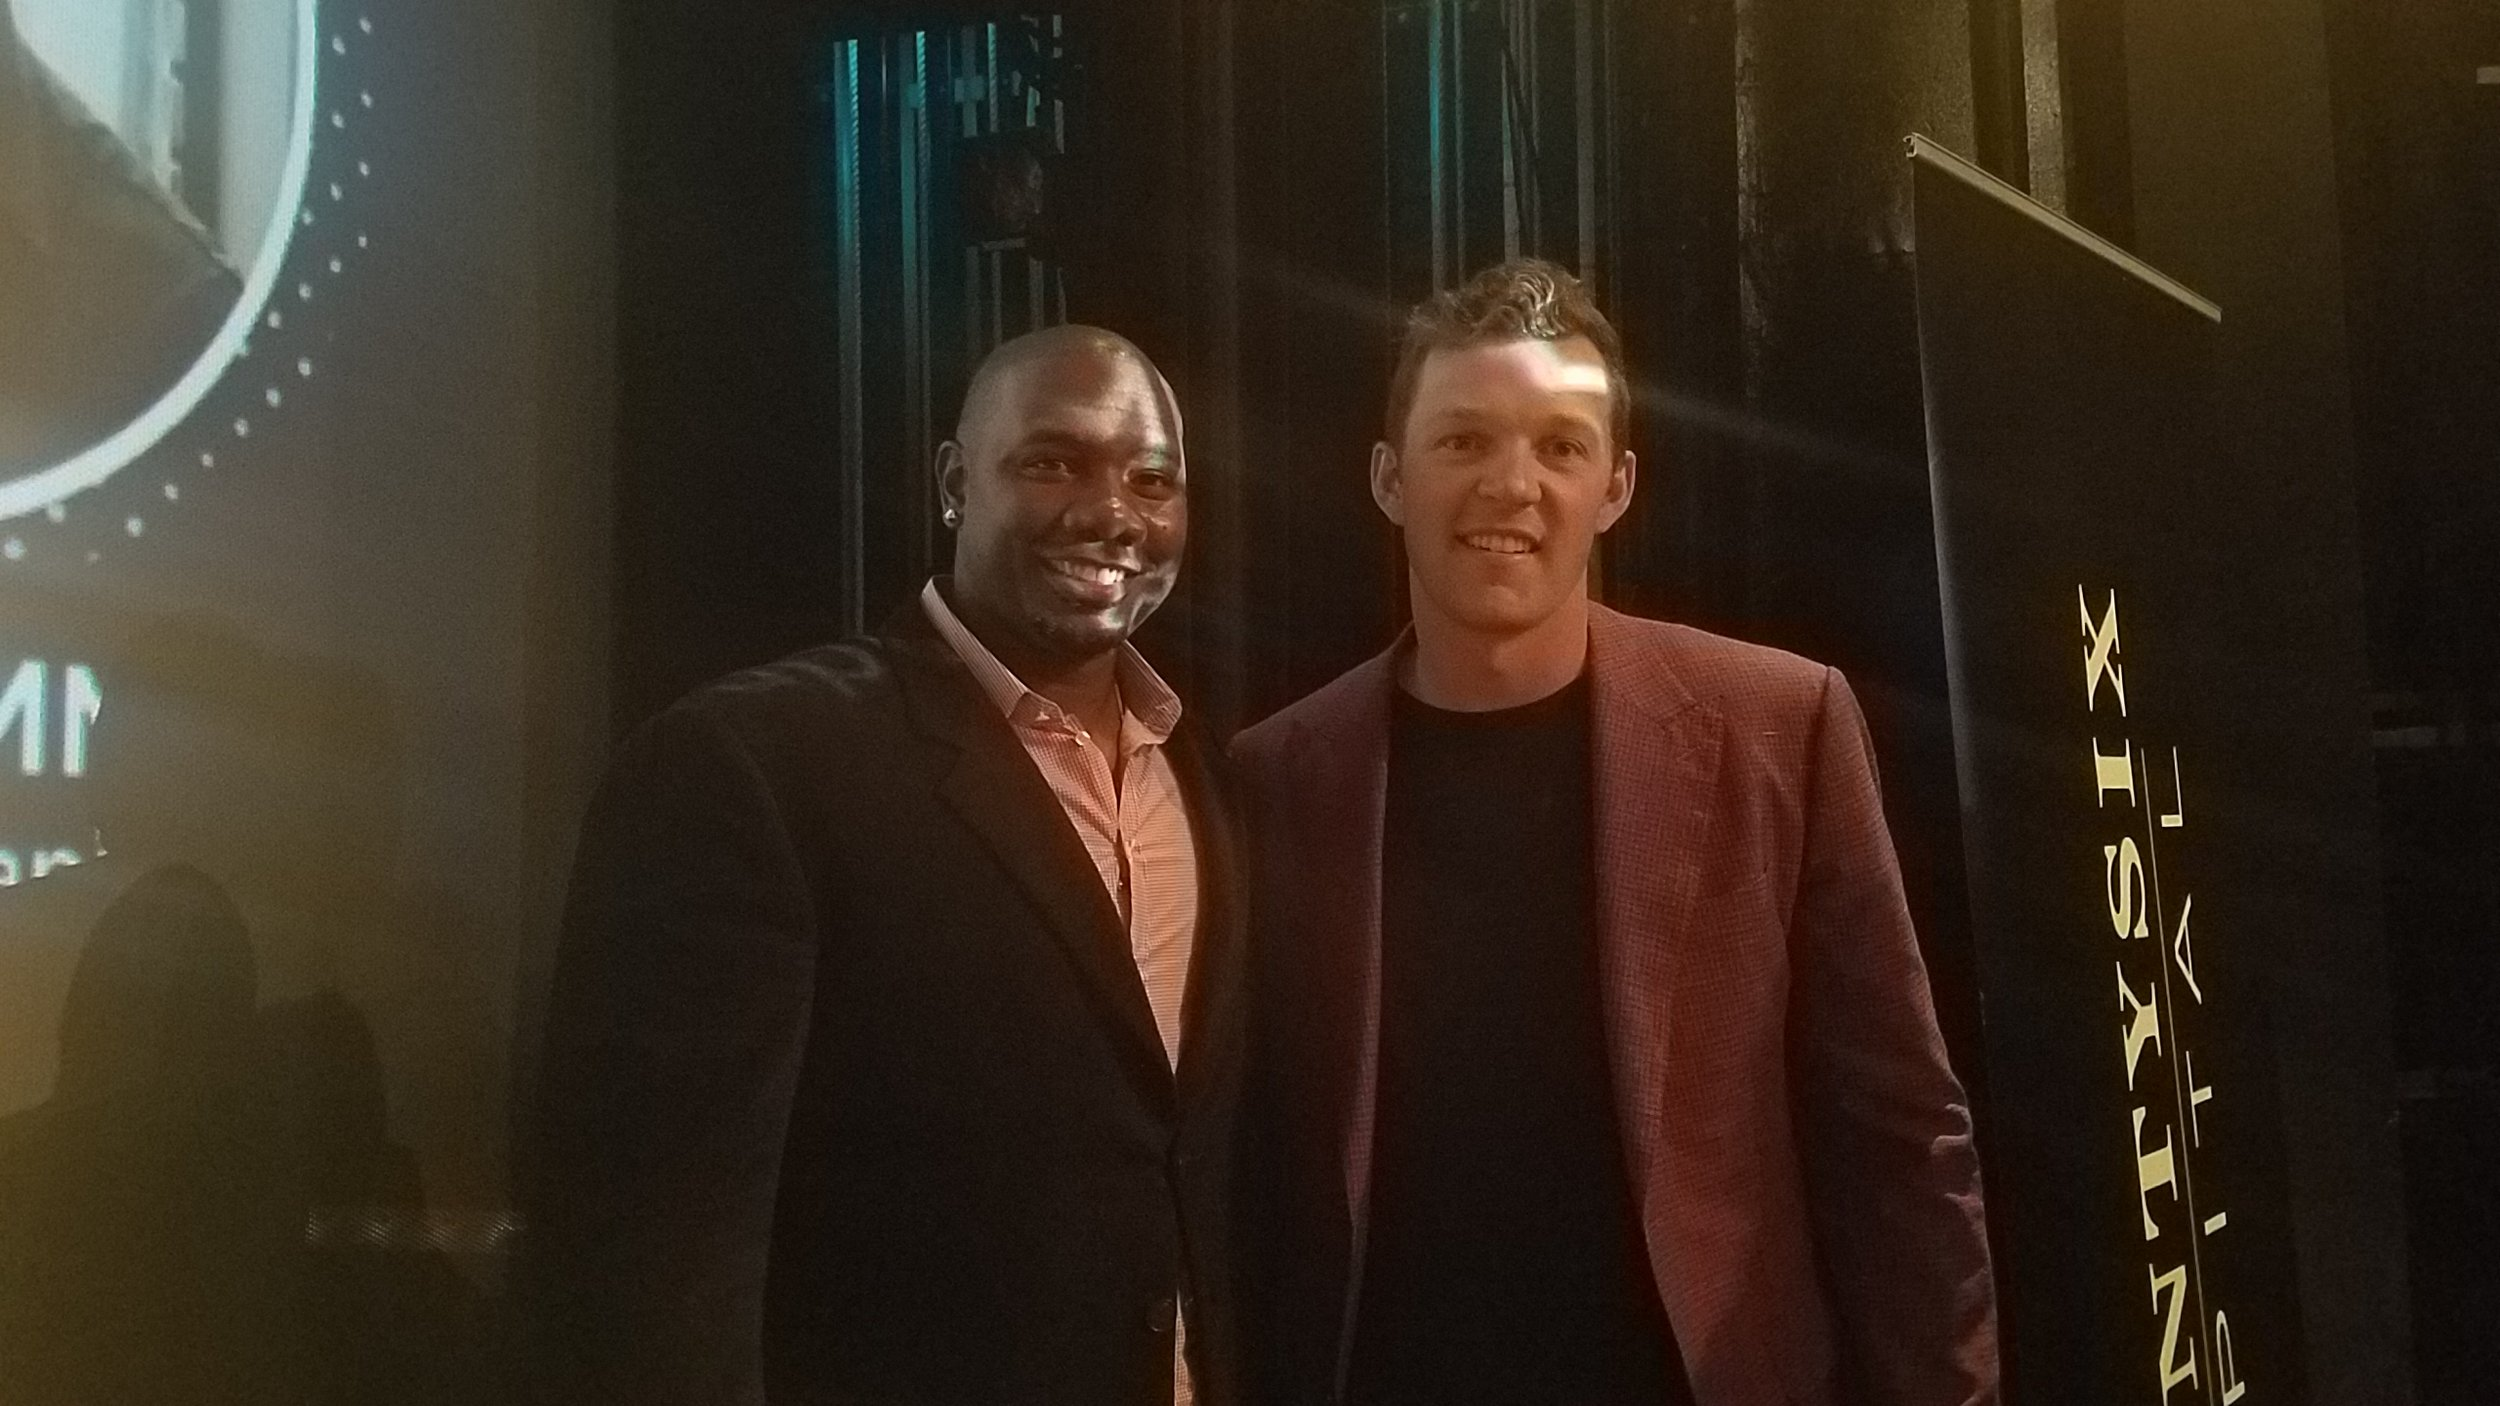 Ryan Howard, 2008 World Series Champion with the Philadelphia Phillies and venture capitalist at SeventySix Capital, with Rhys Hoskins, Philadelphia Phillies player, at our Future of Sports Tech & Sports Betting Conference